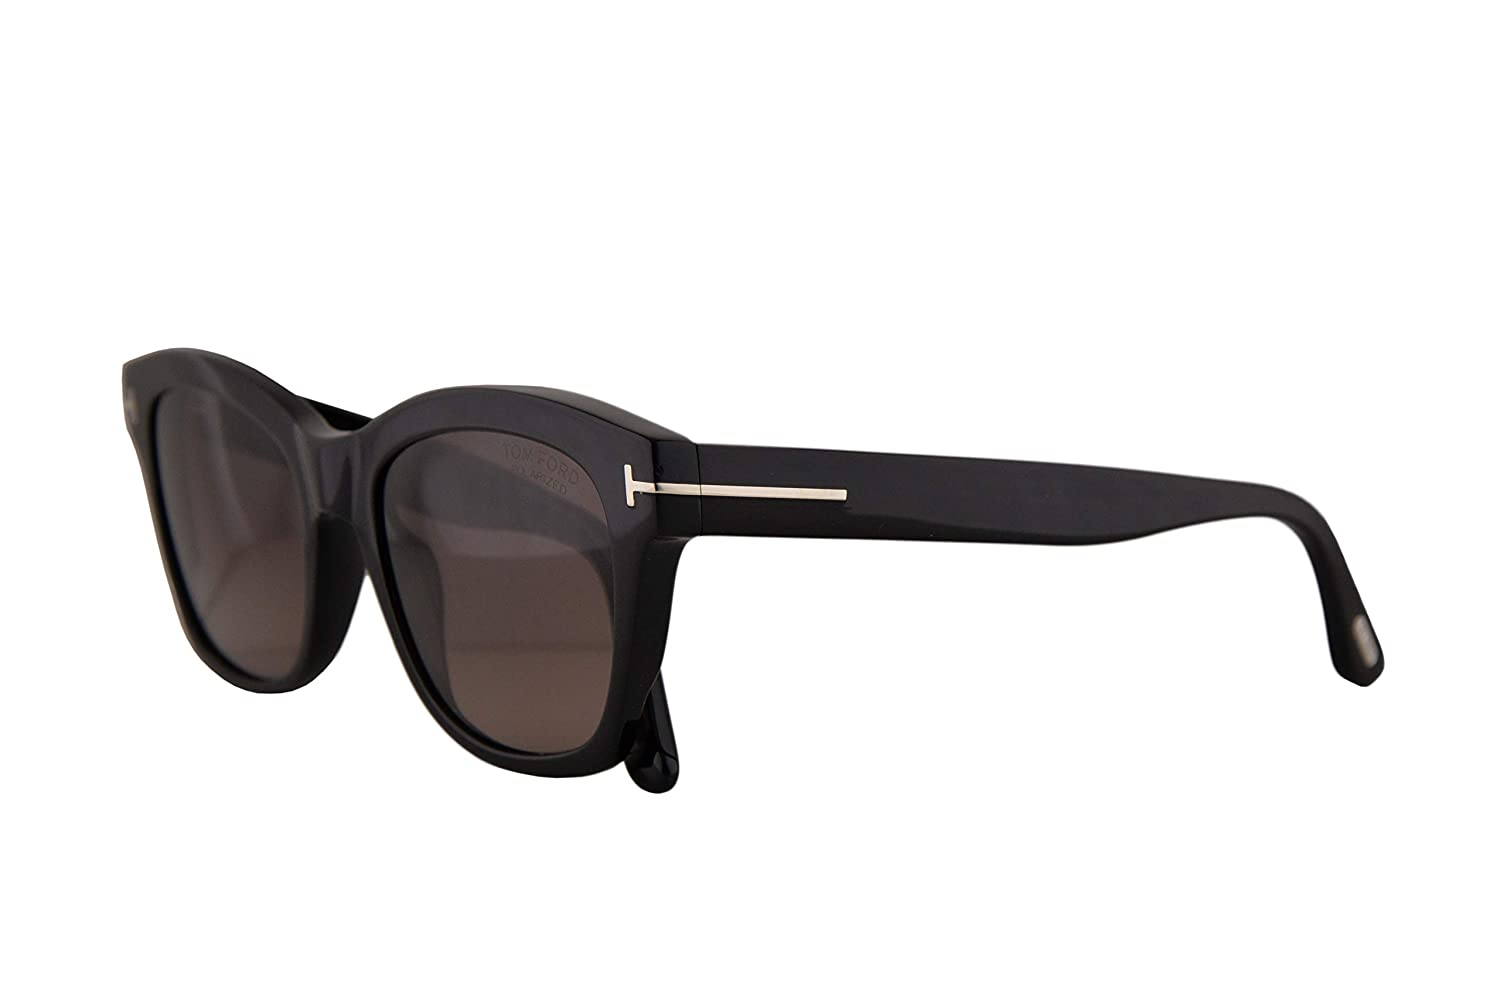 436a742d07afd Amazon.com  Tom Ford FT0614 Lauren-02 Sunglasses Shiny Black w Polarized  Brown 52mm Lens 01H FT614 TF 614 TF614  Clothing